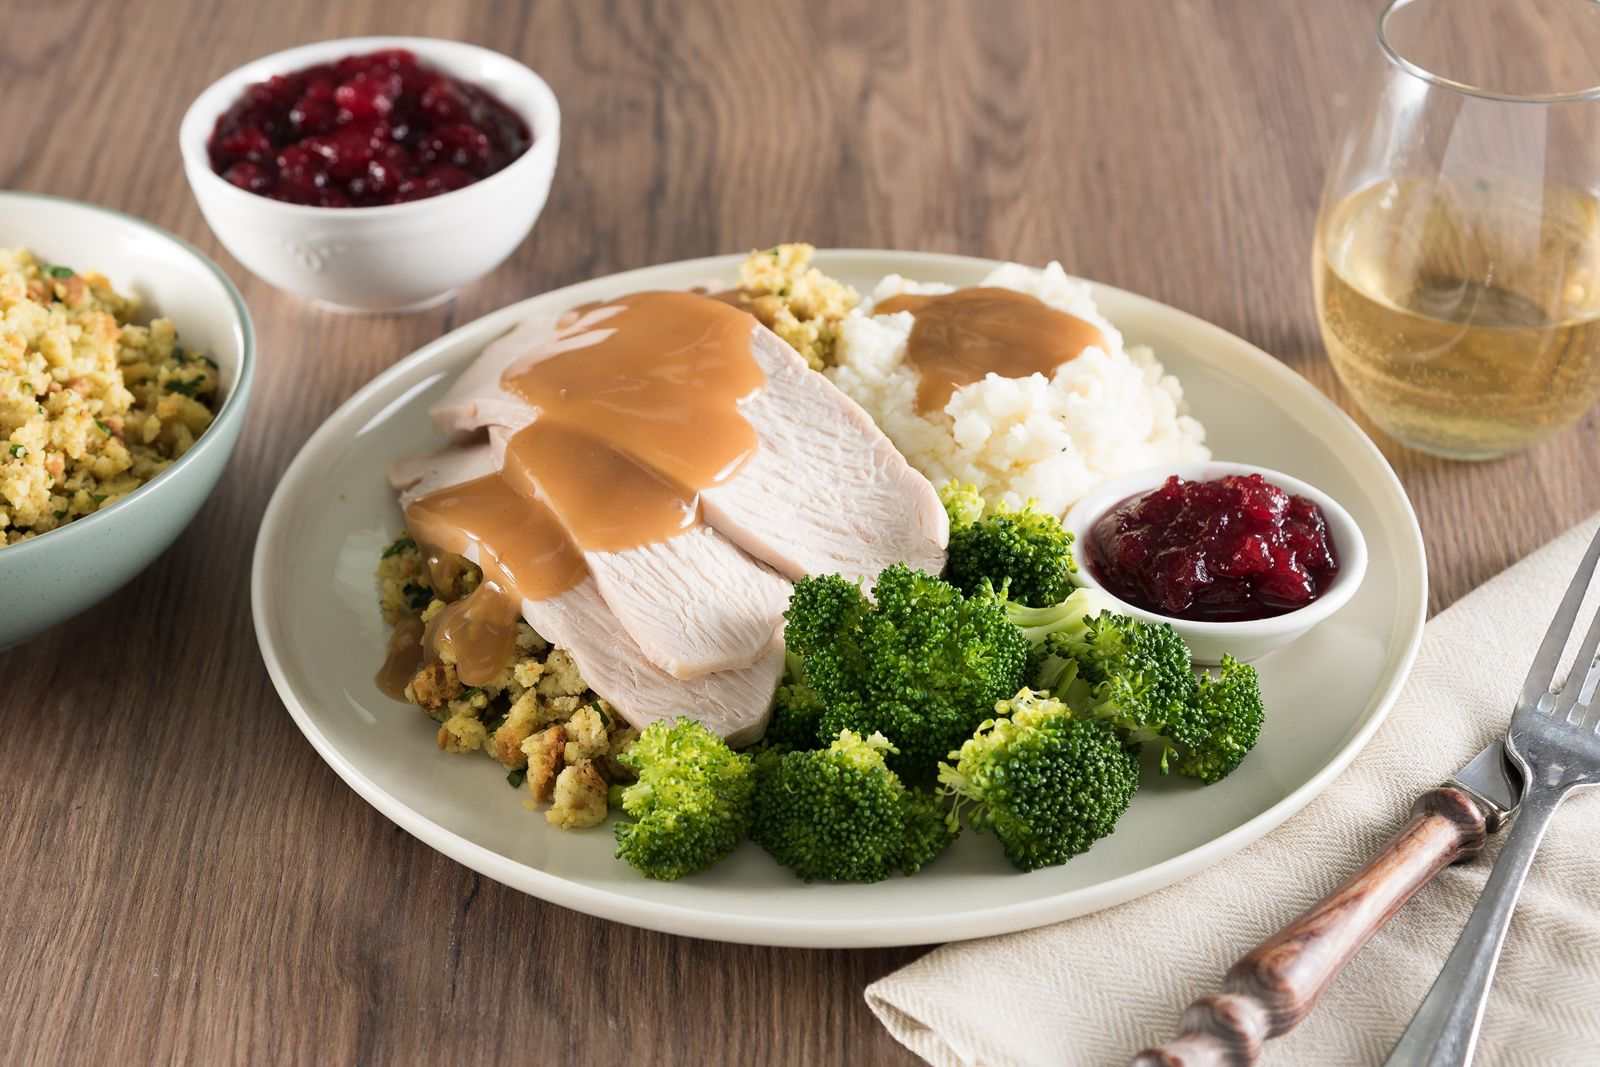 TooJay's Deli Launches New Family Meal Bundles